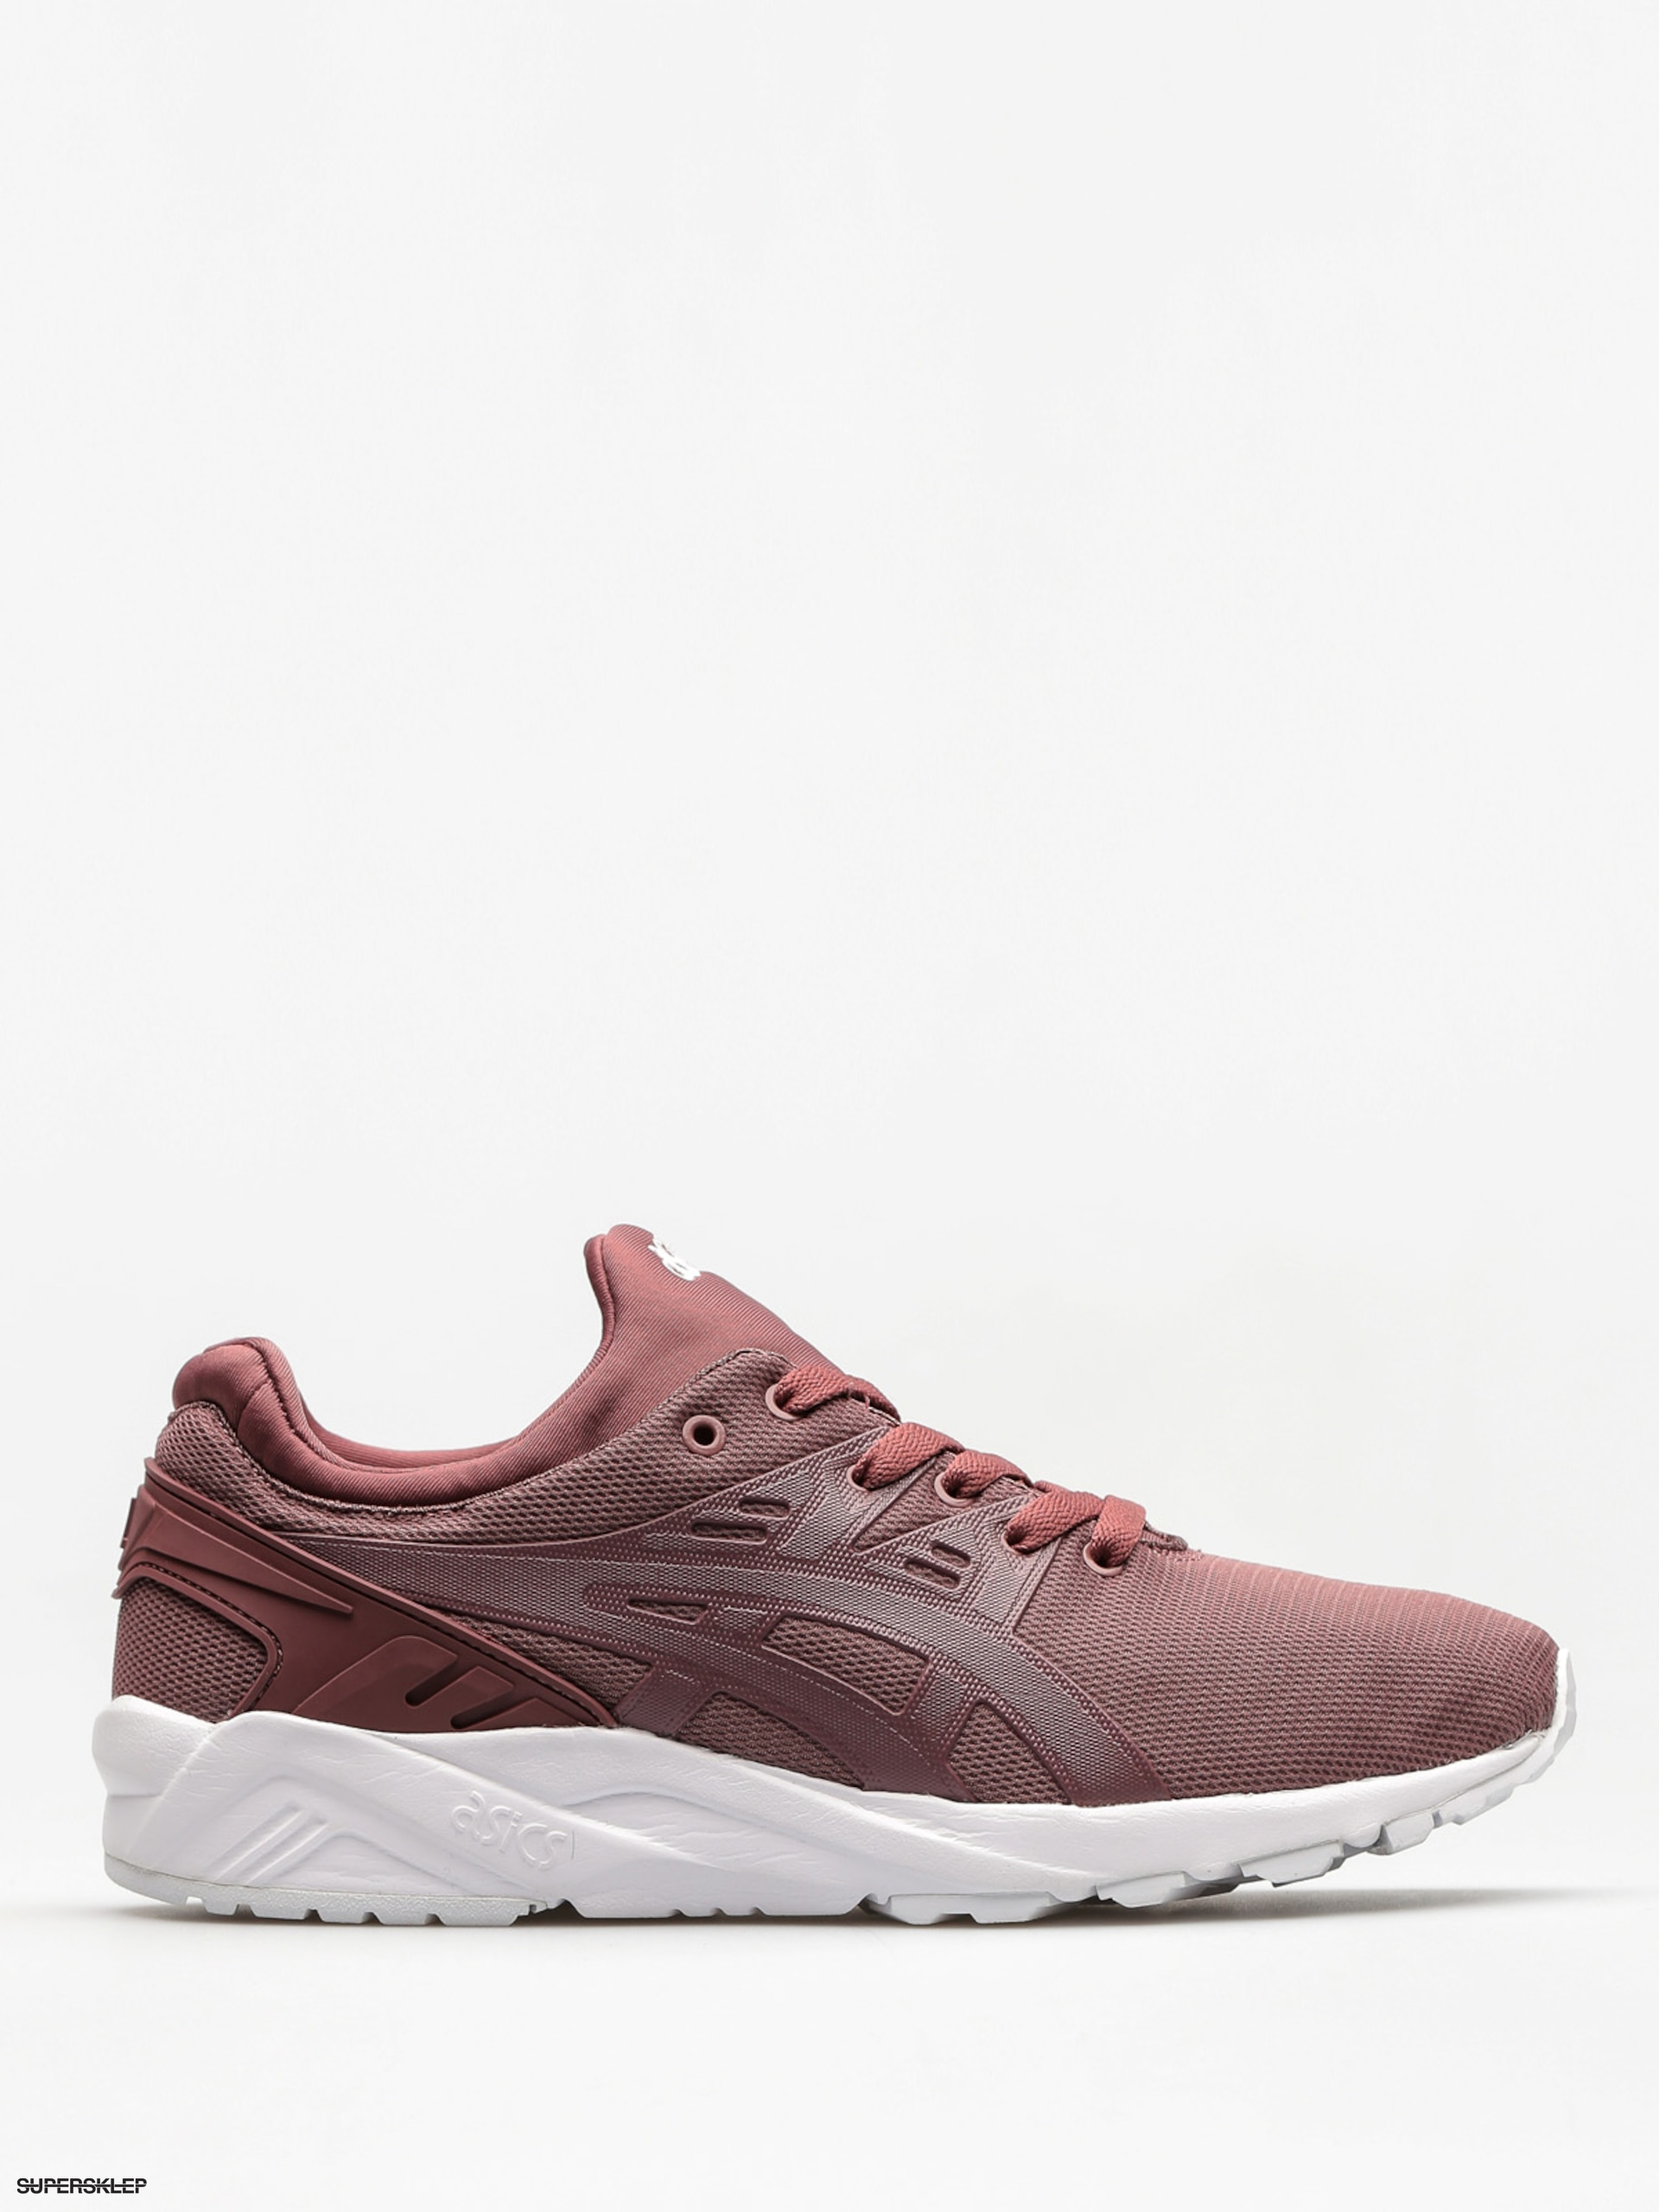 628bbbf8db14 Buty ASICS Tiger Gel Kayano Trainer Evo Gs (rose taupe rose taupe)